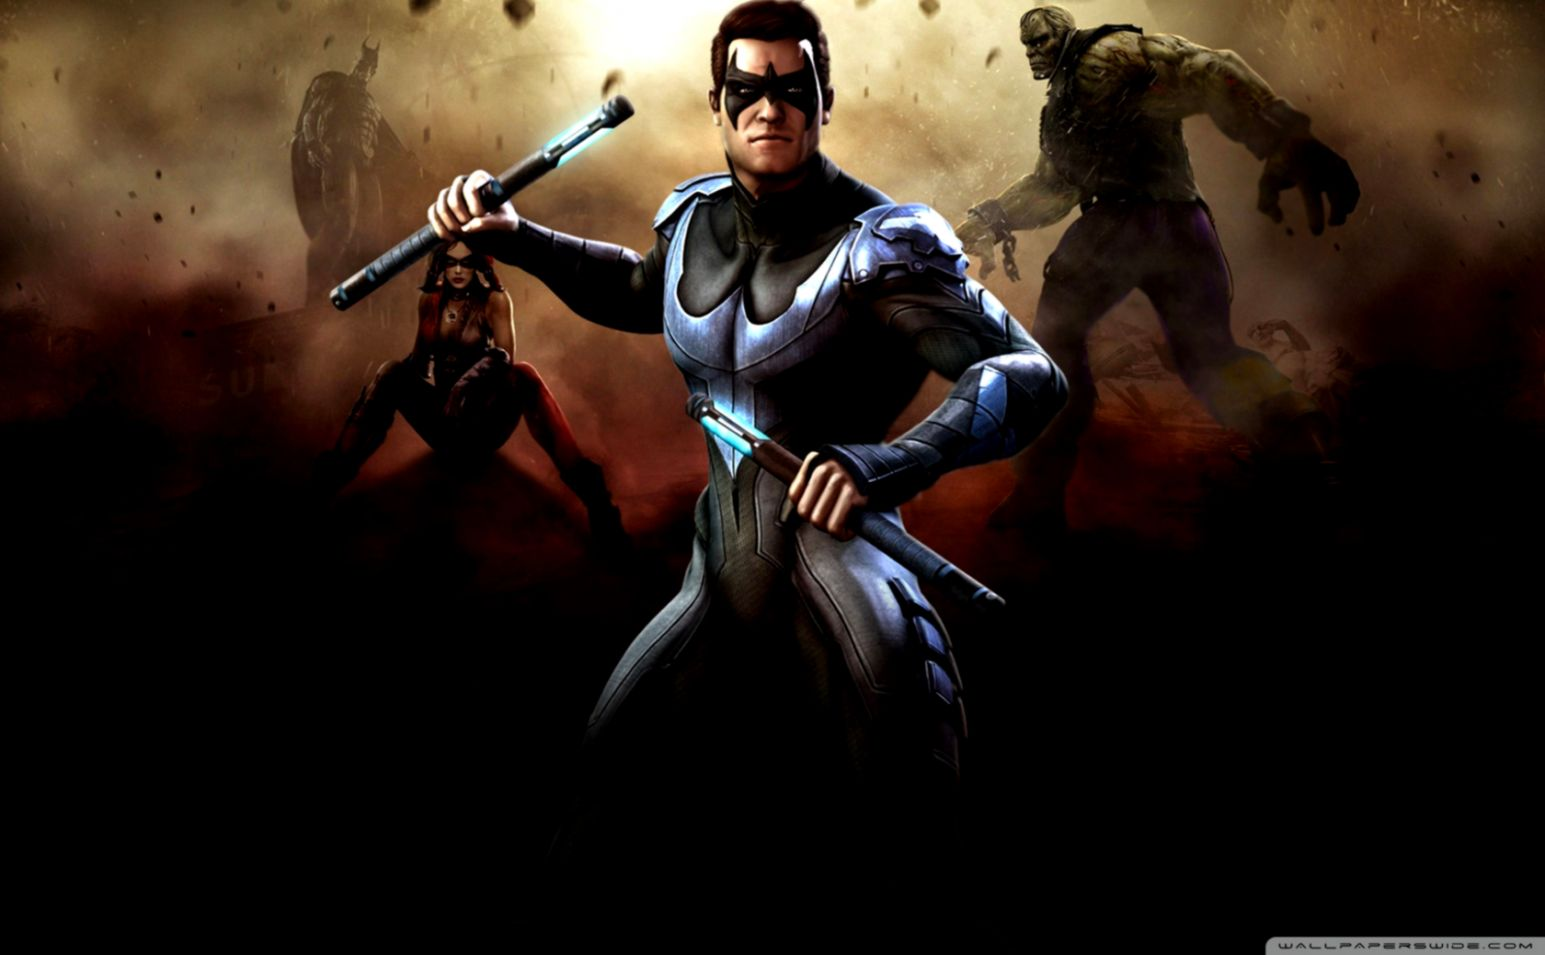 Injustice Gods Among Us Nightwing Artwork Wallpapers